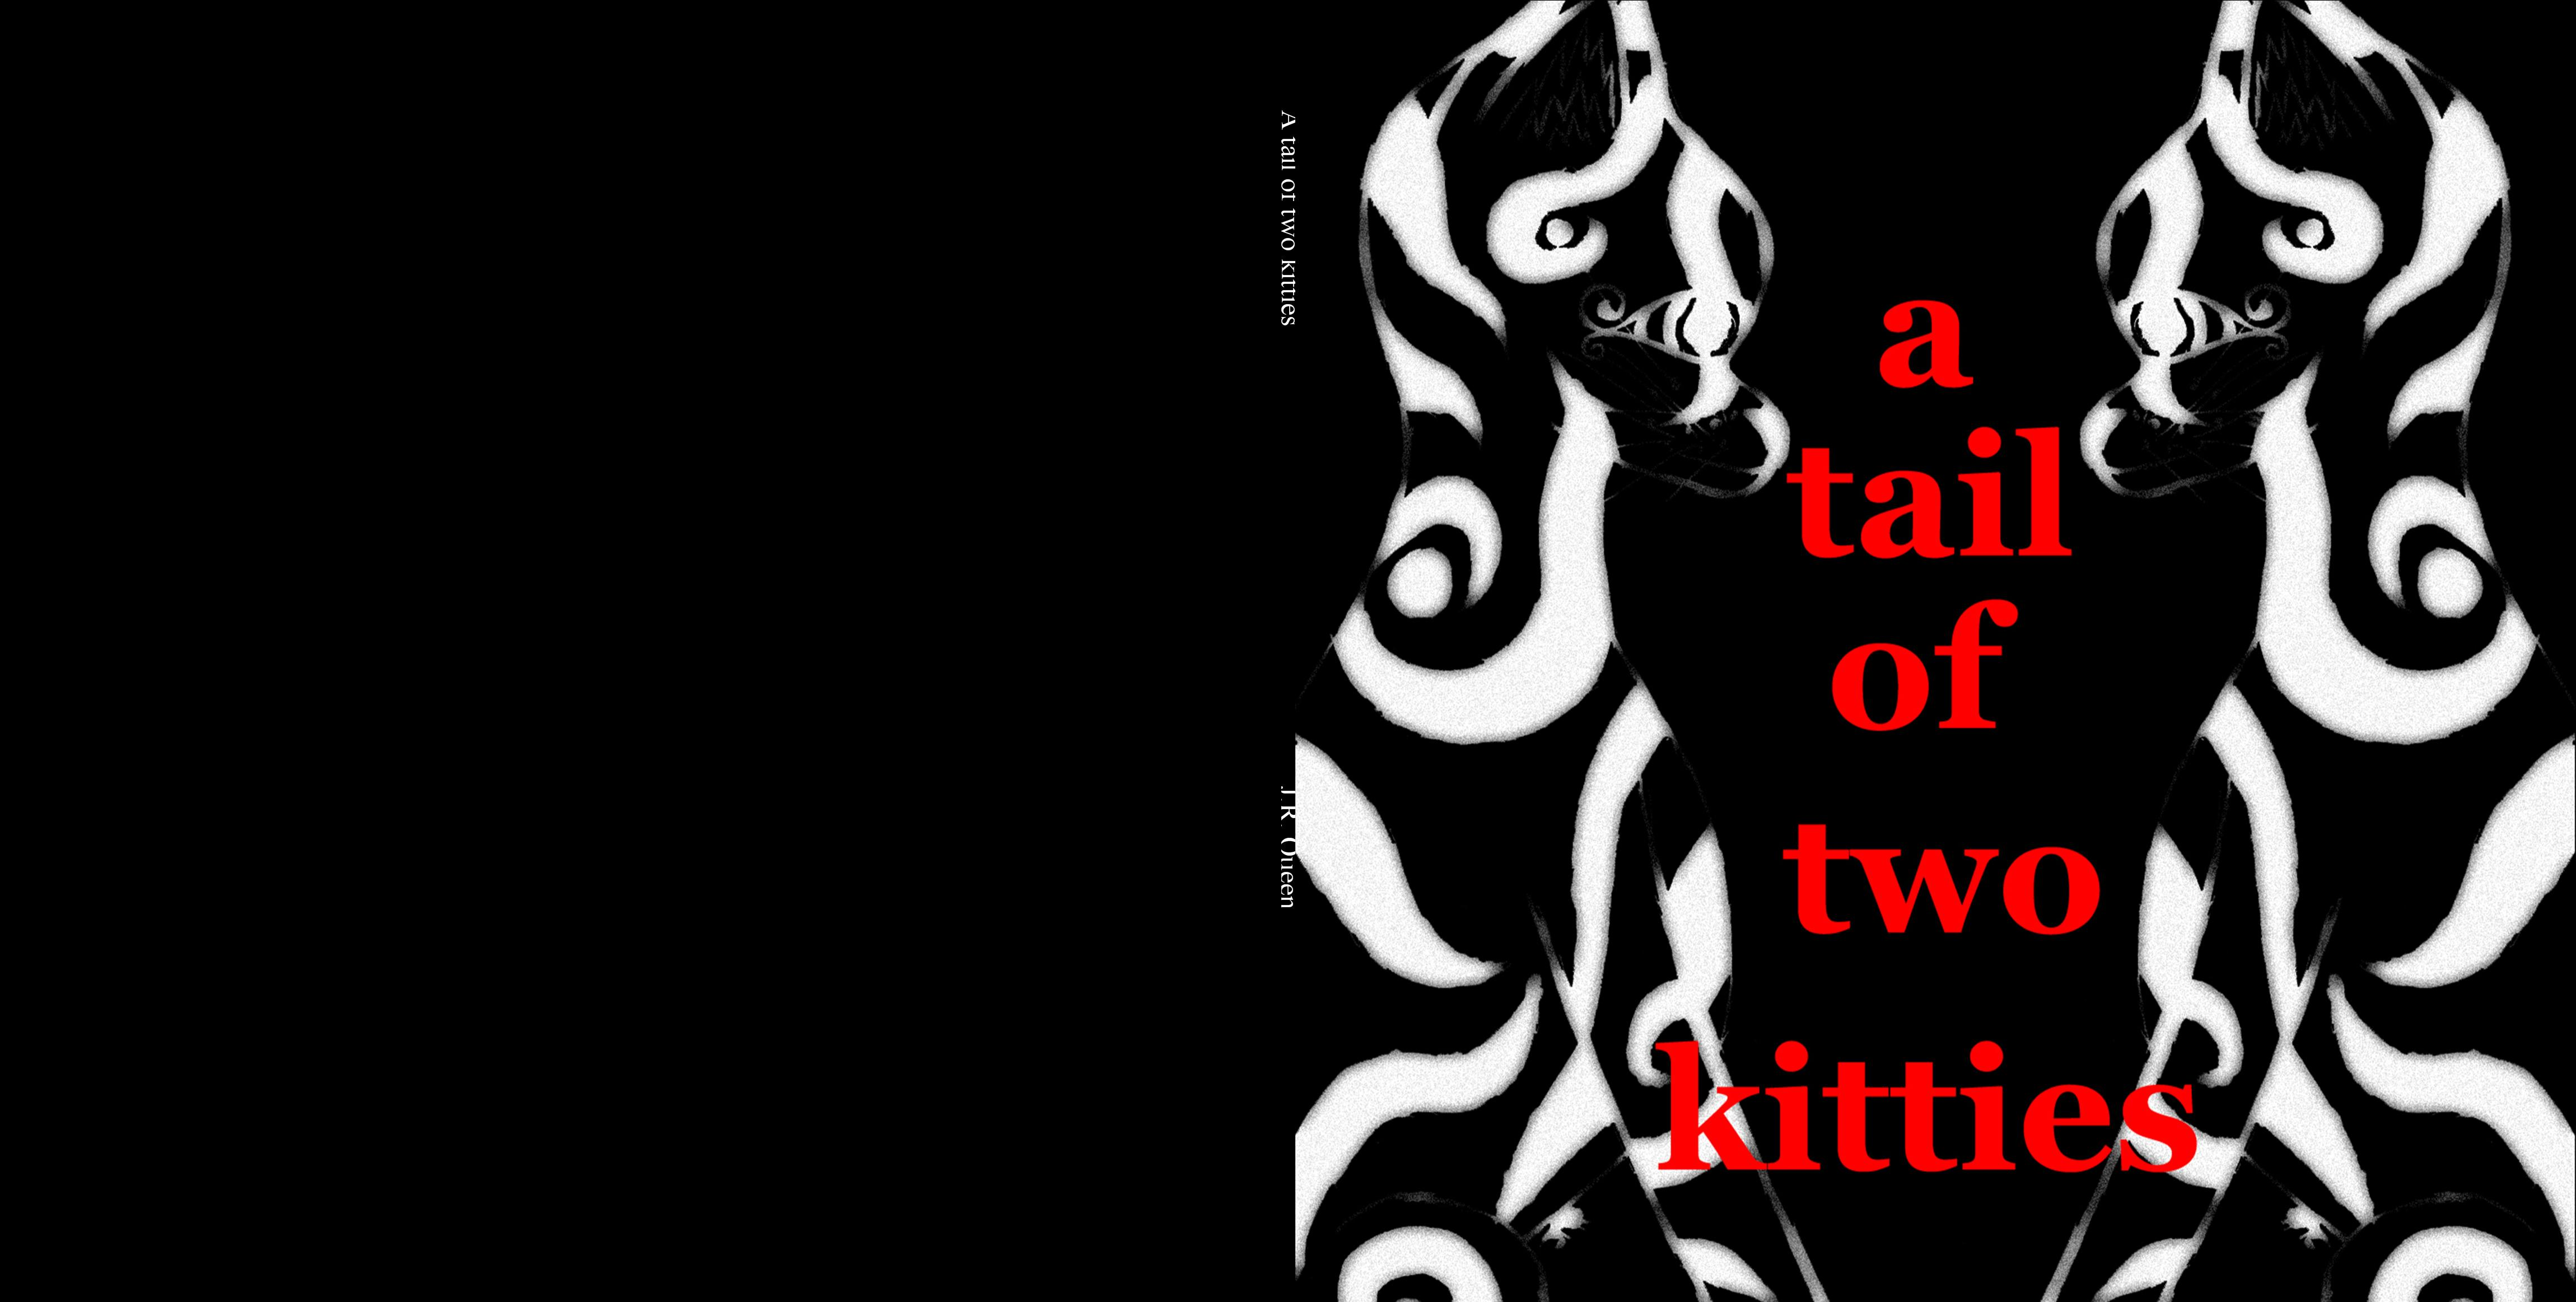 A tail of two kitties cover image